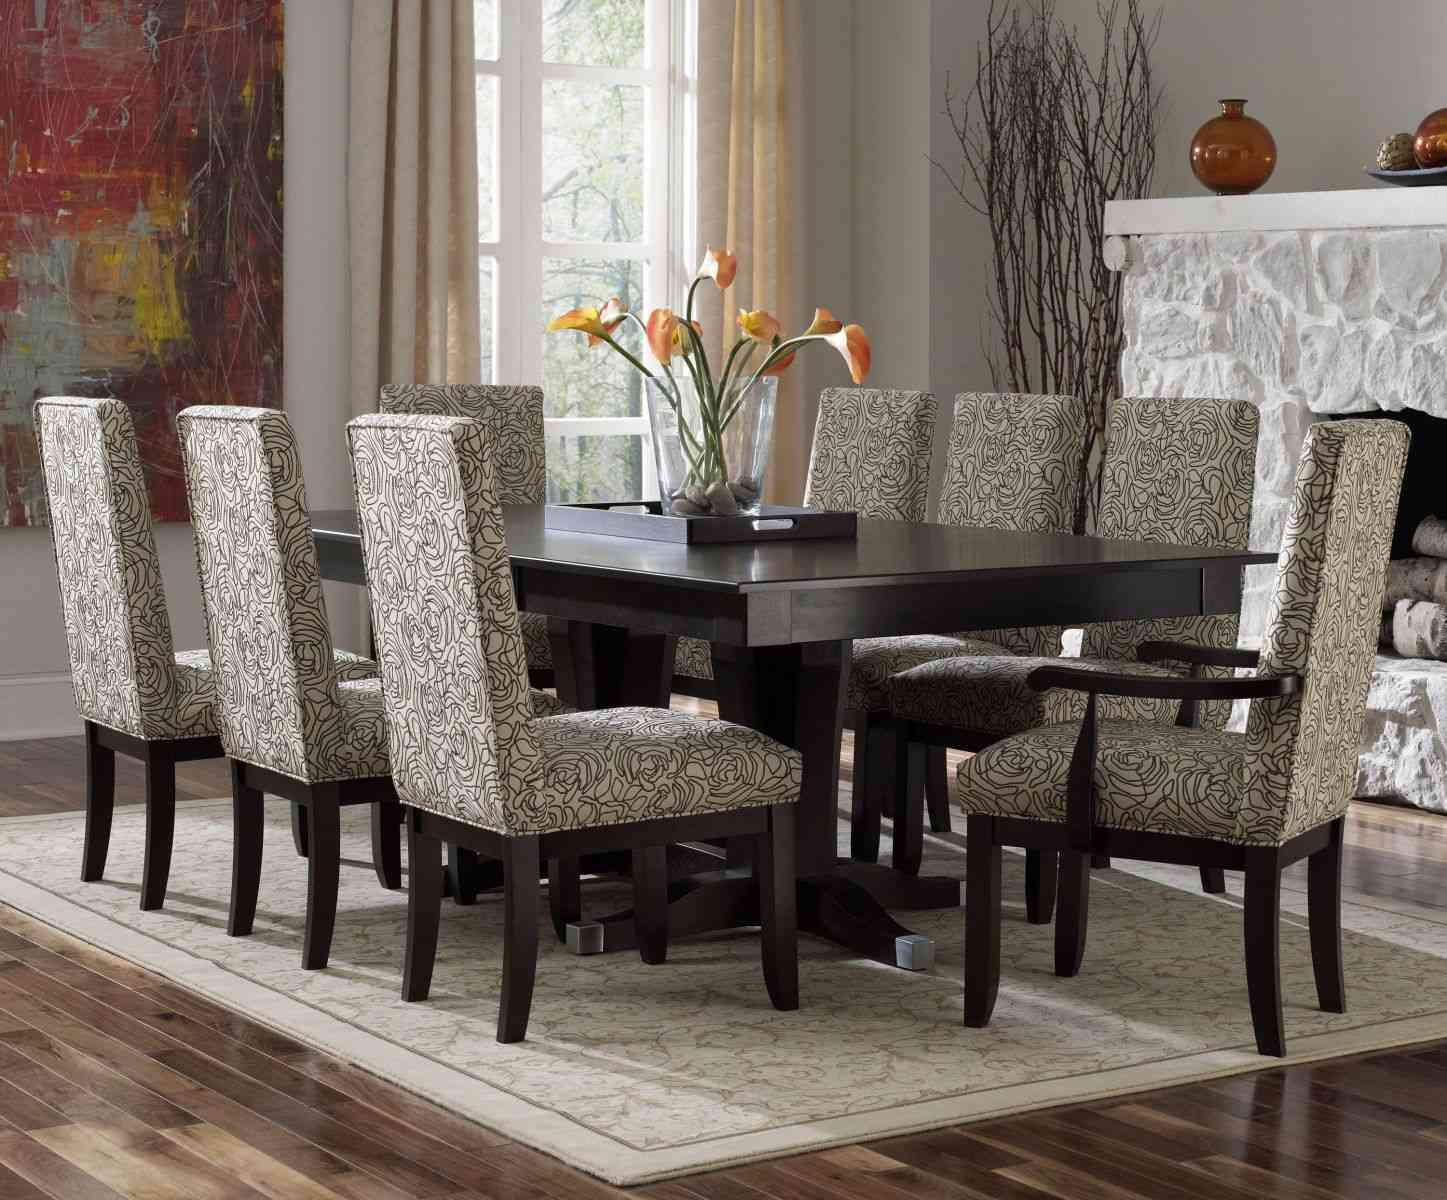 18 Transitional Dining Room Design Ideas For 2018 Live Enhanced